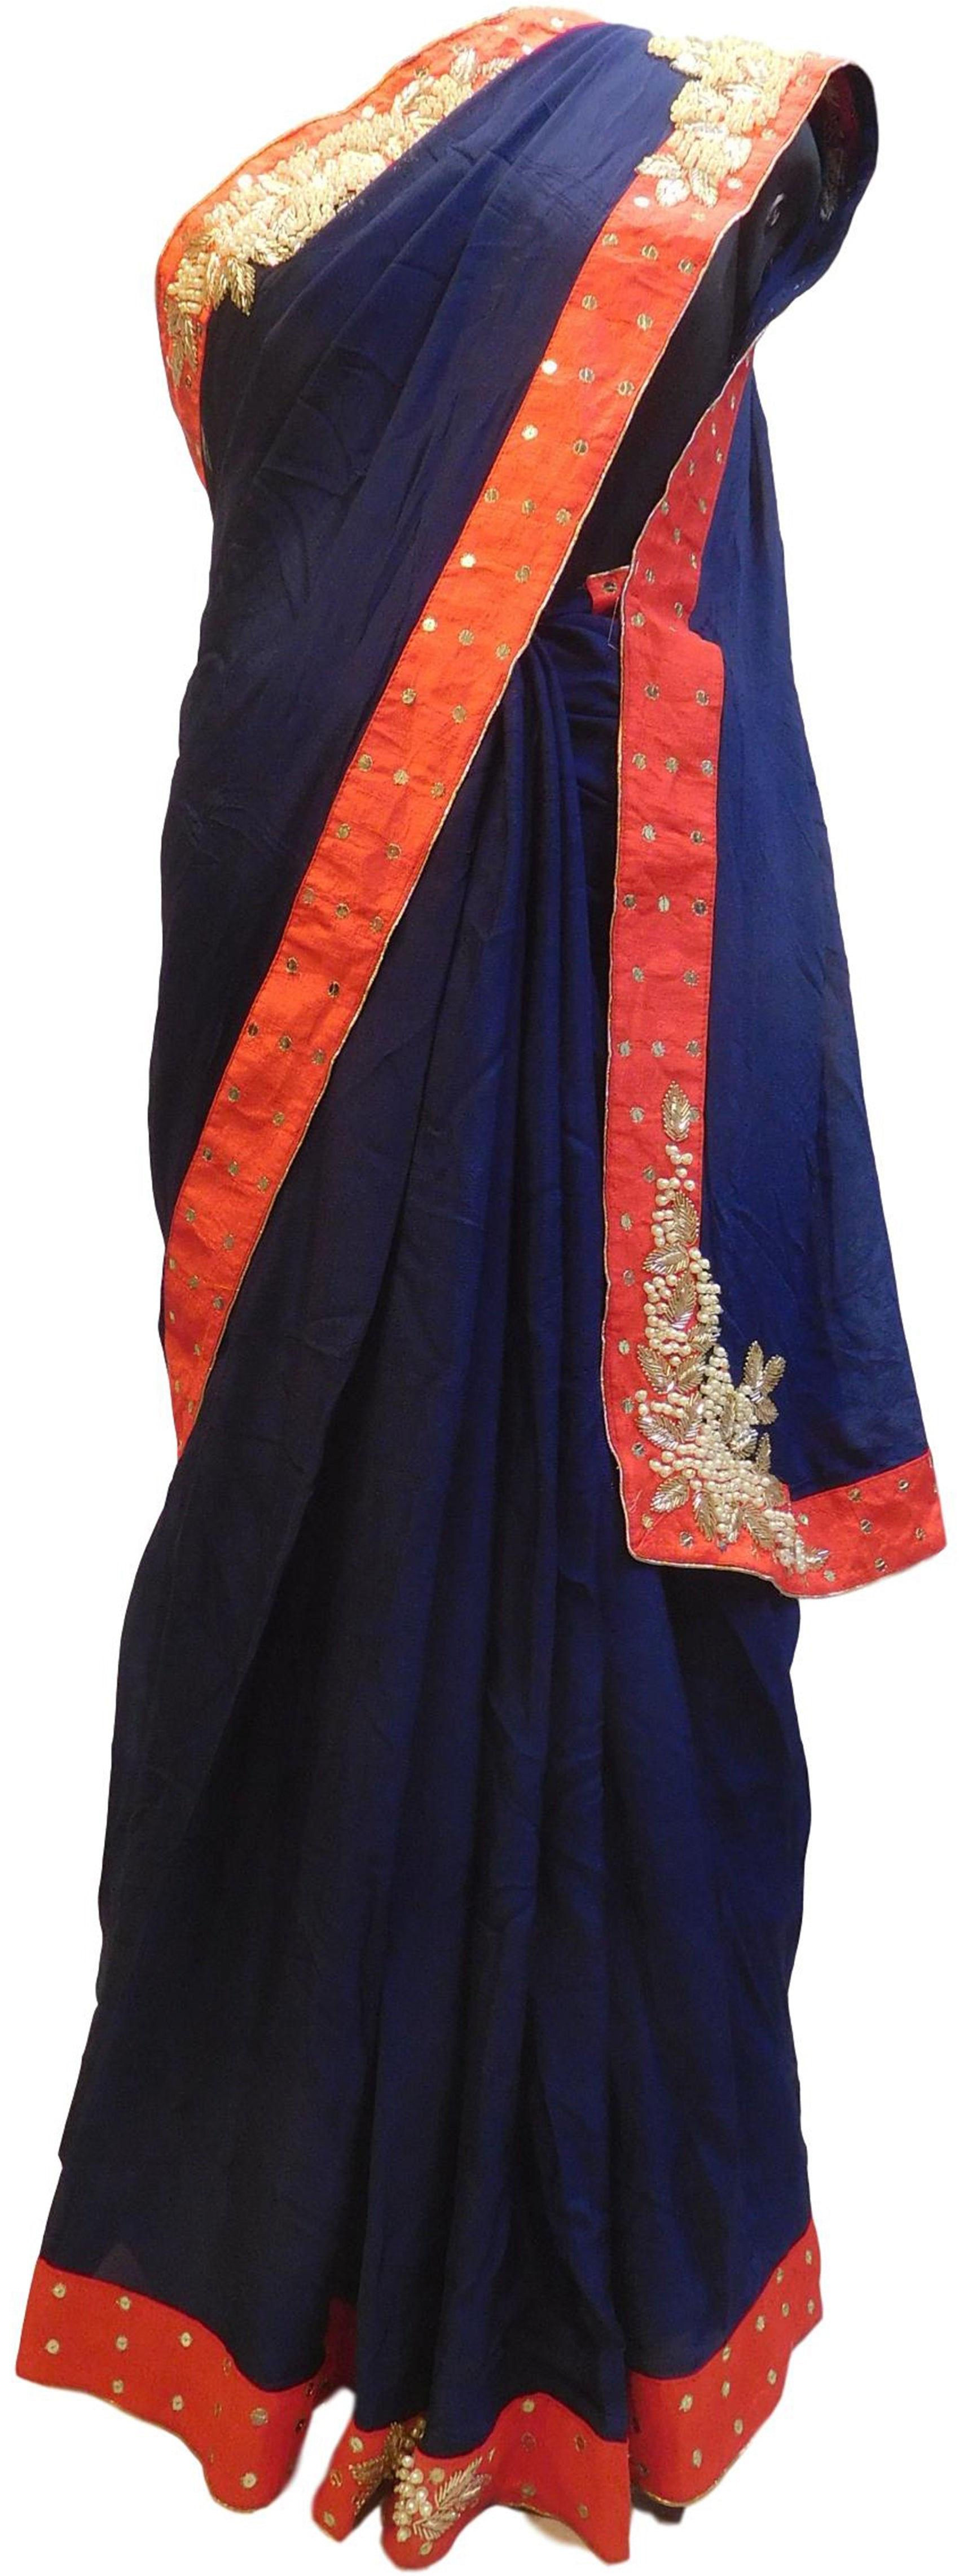 Blue Designer Wedding Partywear Crepe (Chinon) Bullion Pearl Sequence Cutdana Beads Hand Embroidery Work Bridal Saree Sari E056